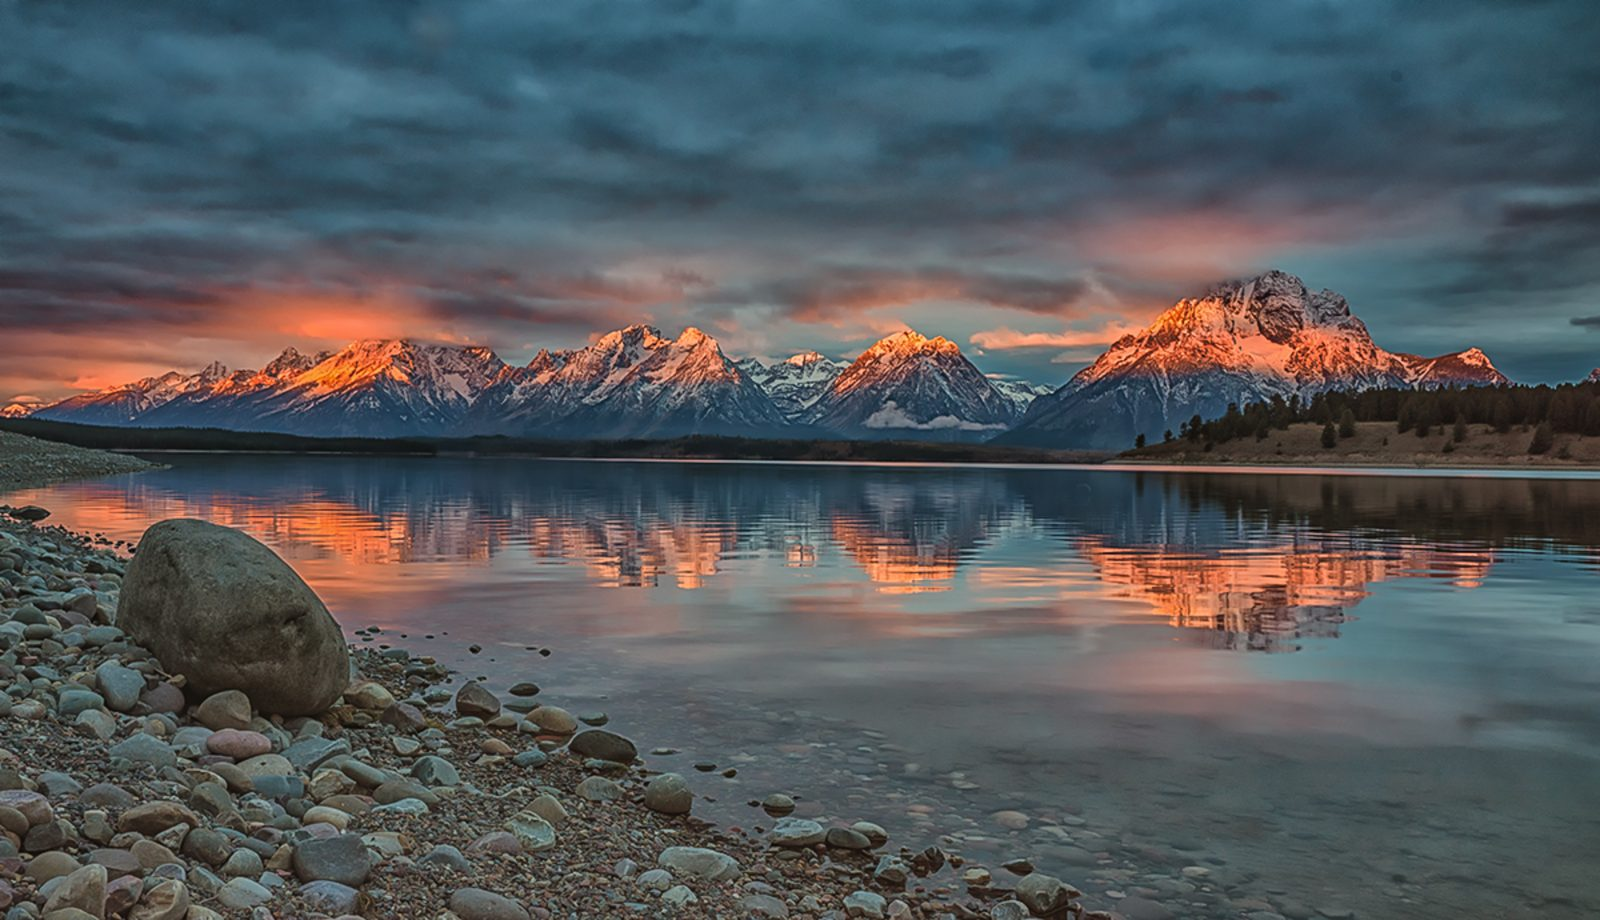 Sunrise Jackson Lake Grand Teton National Park